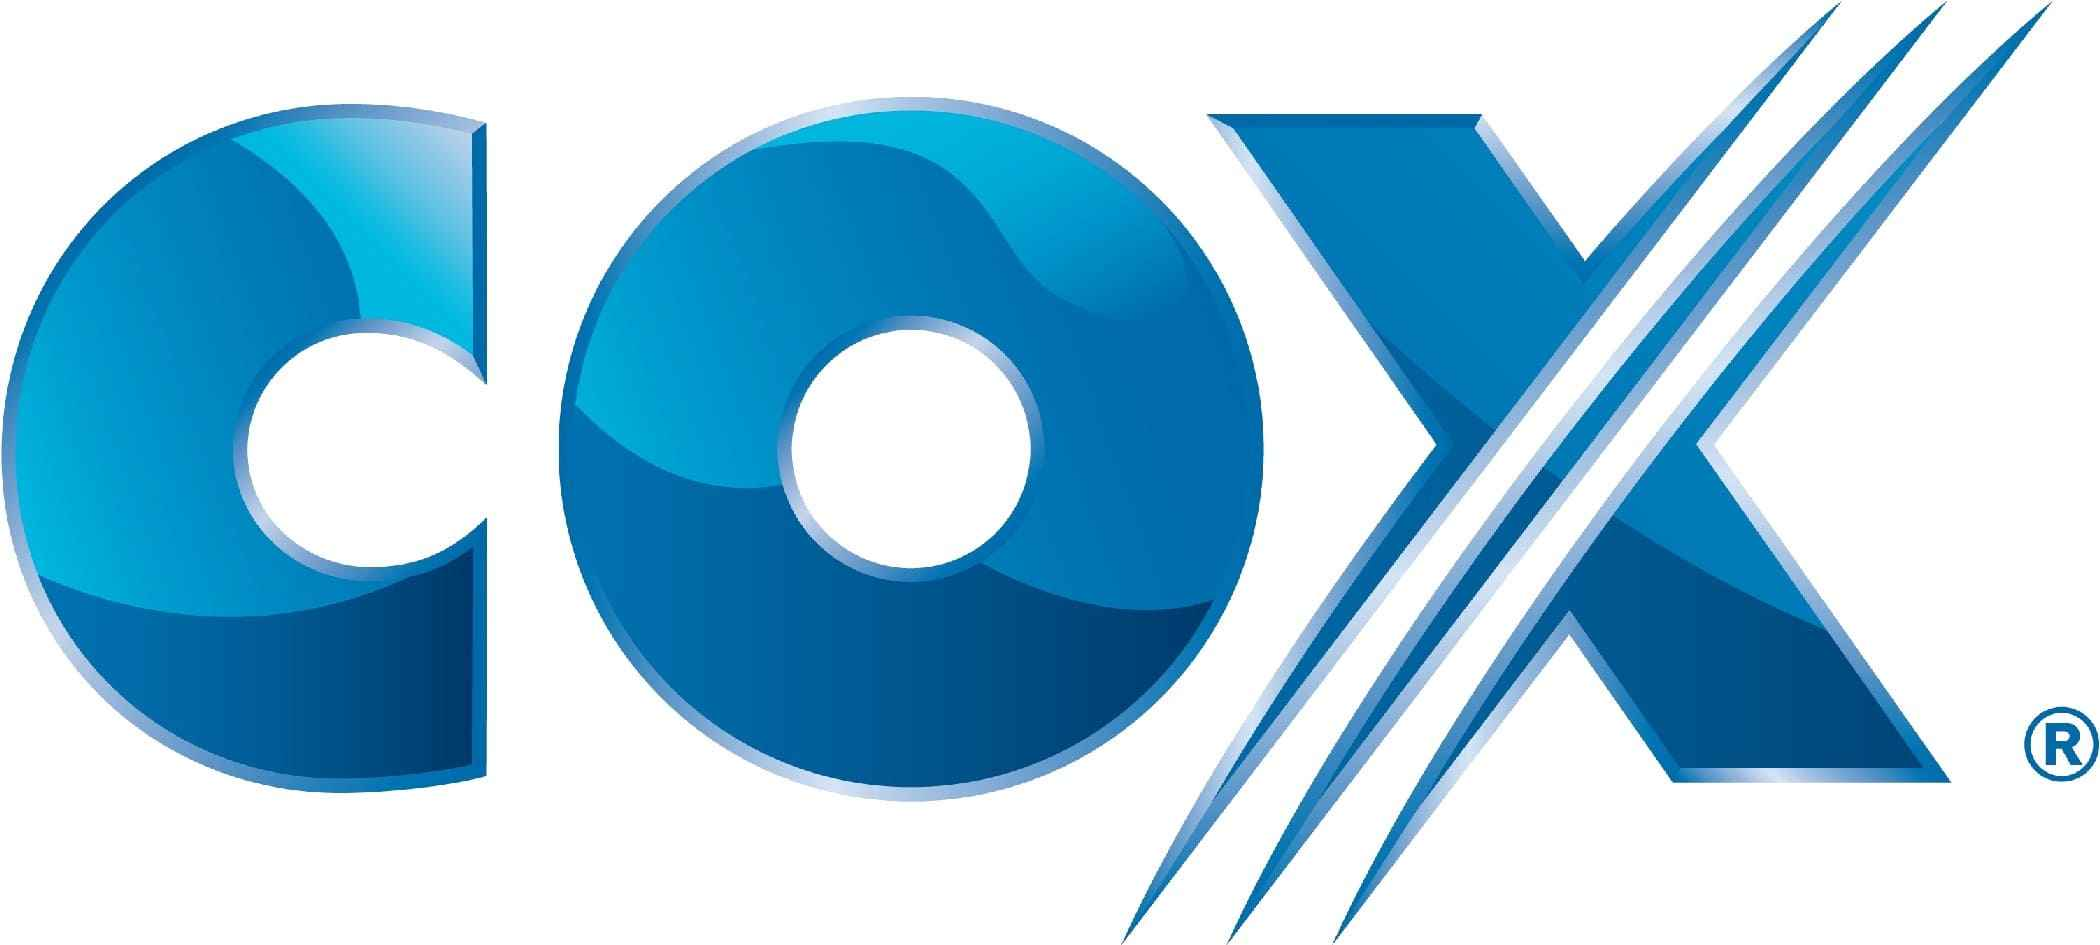 COX Logo [Communications] png